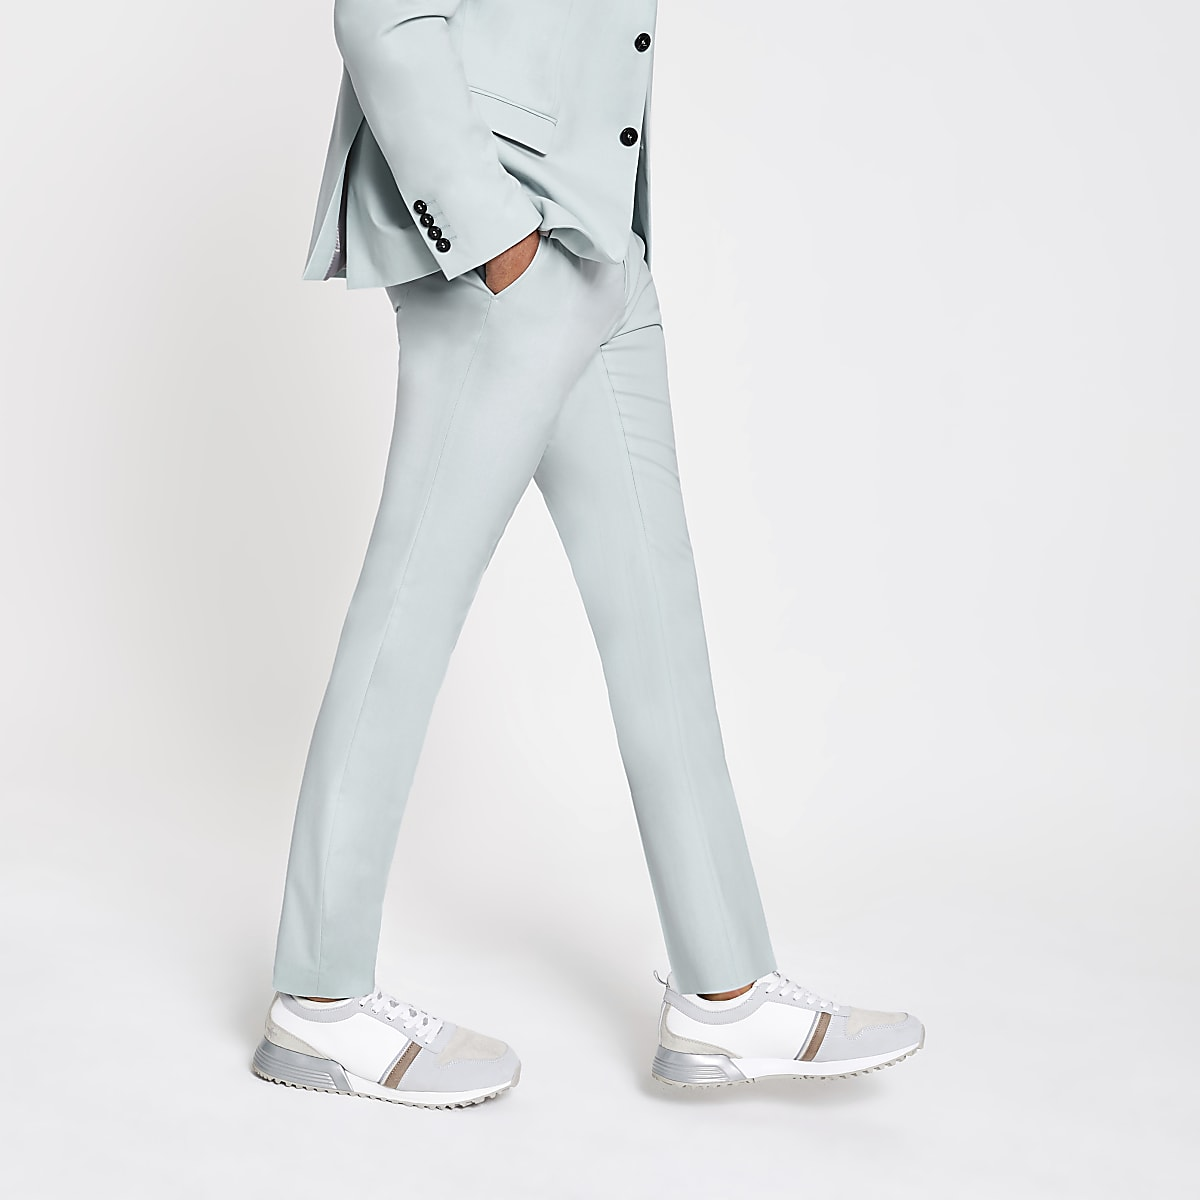 Selected Homme green slim fit suit pants